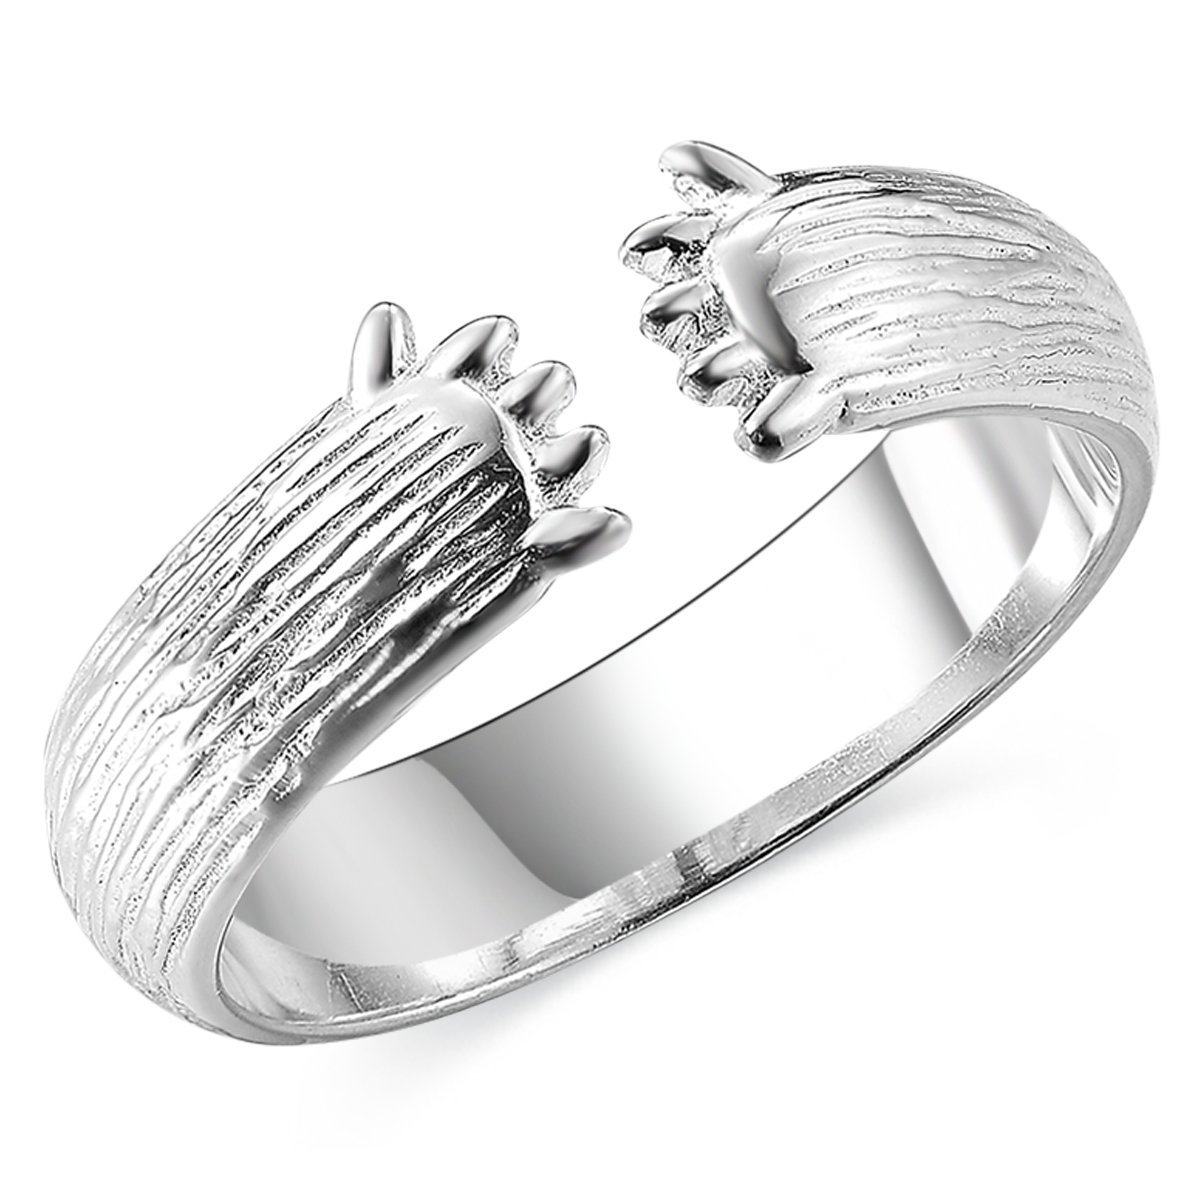 JEWME 925 Sterling Silver Jewelry Women Love Hug Open Rings with Bear Claws Paws